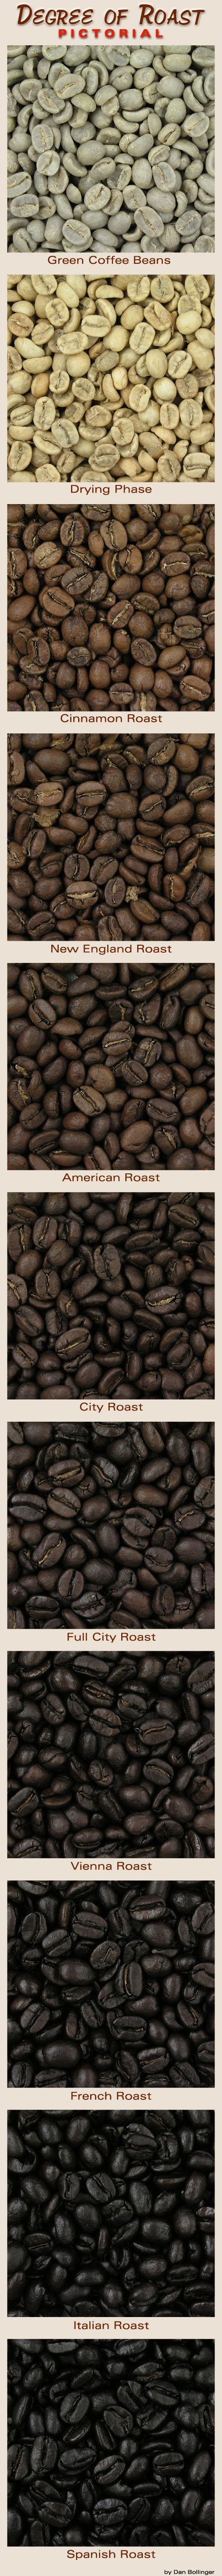 Different levels of coffee roasting. | COFFEE….. Time For Coffee!! | …